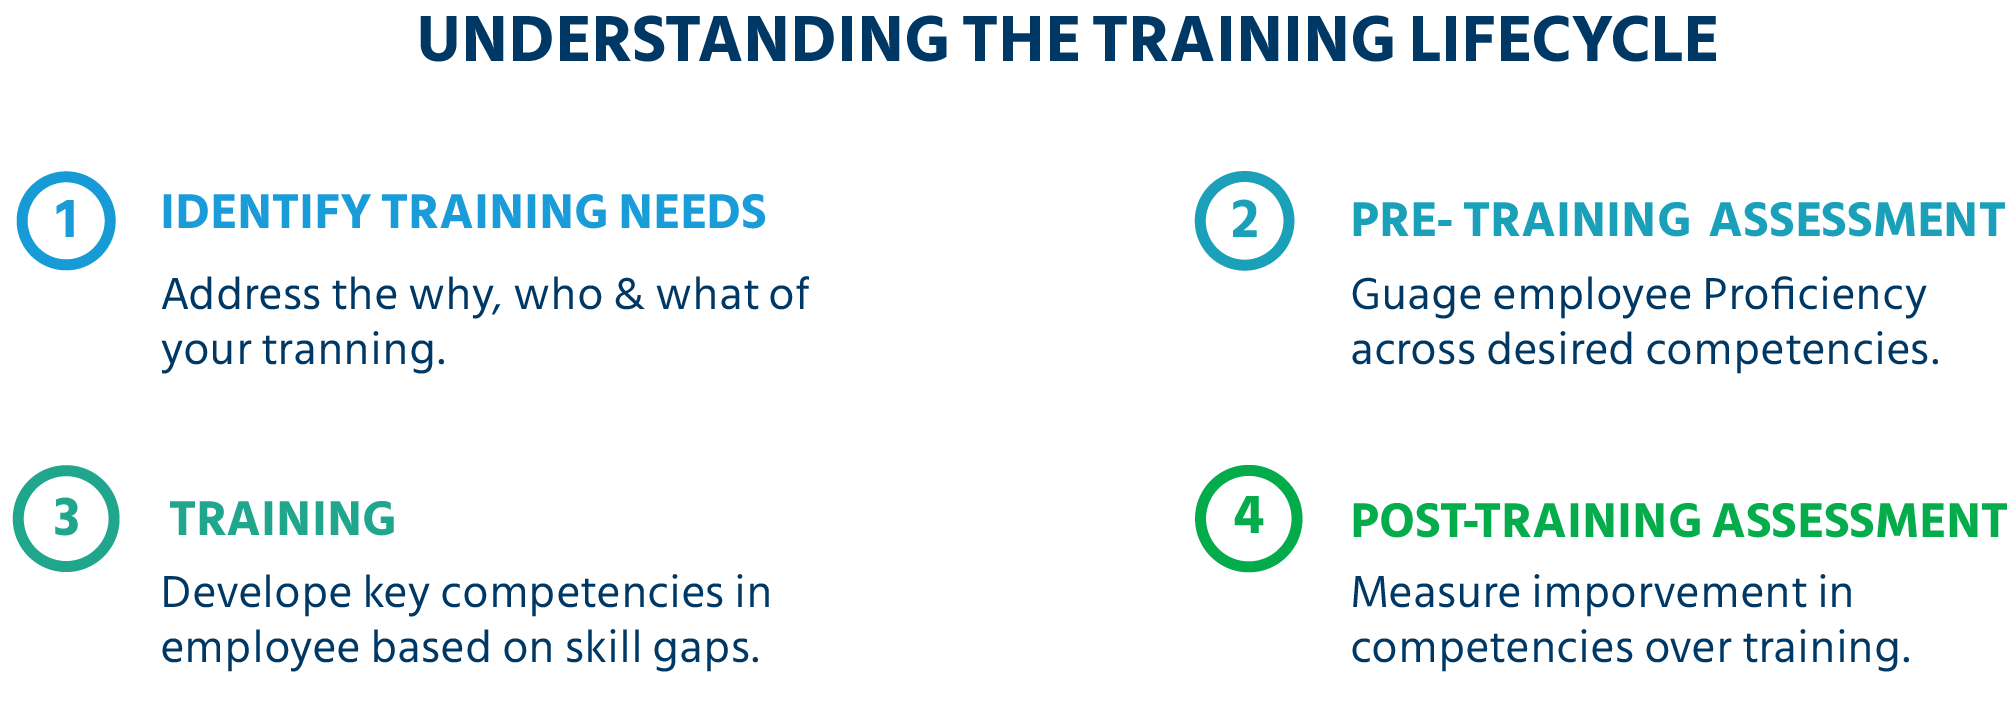 understanding the training lifecycle in learning and development